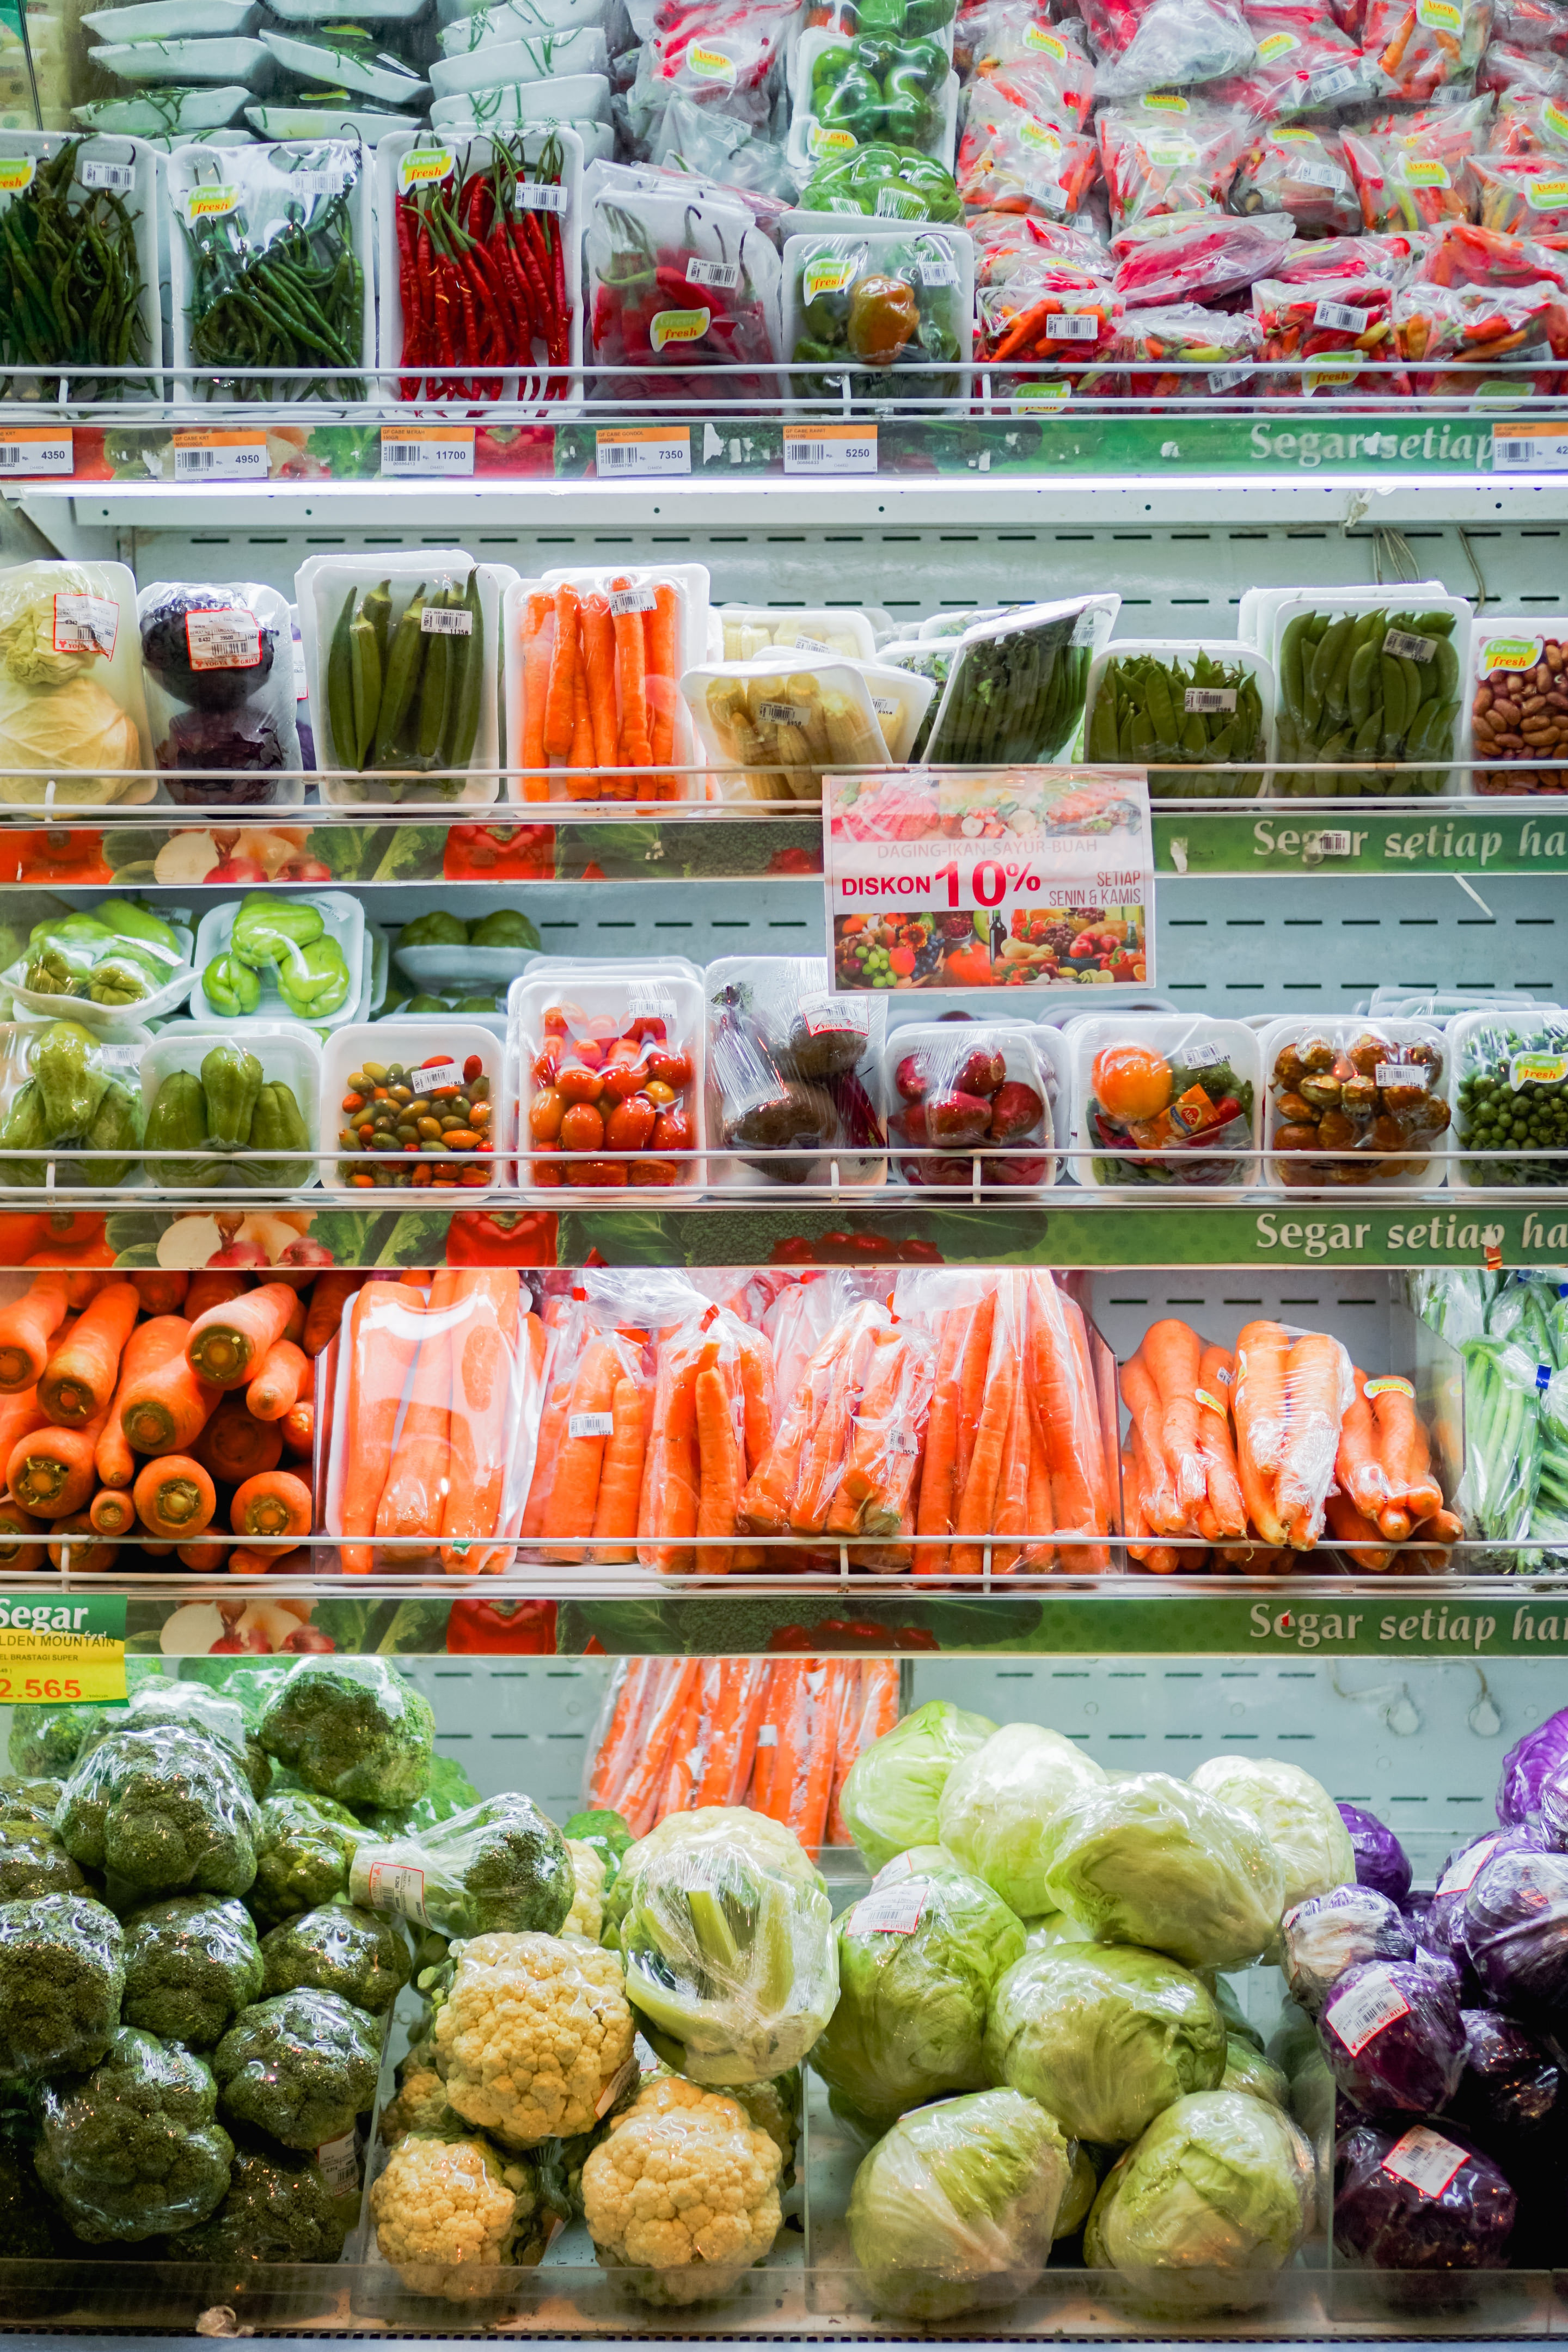 Food recalls: The why and 5 plausible innovative solutions